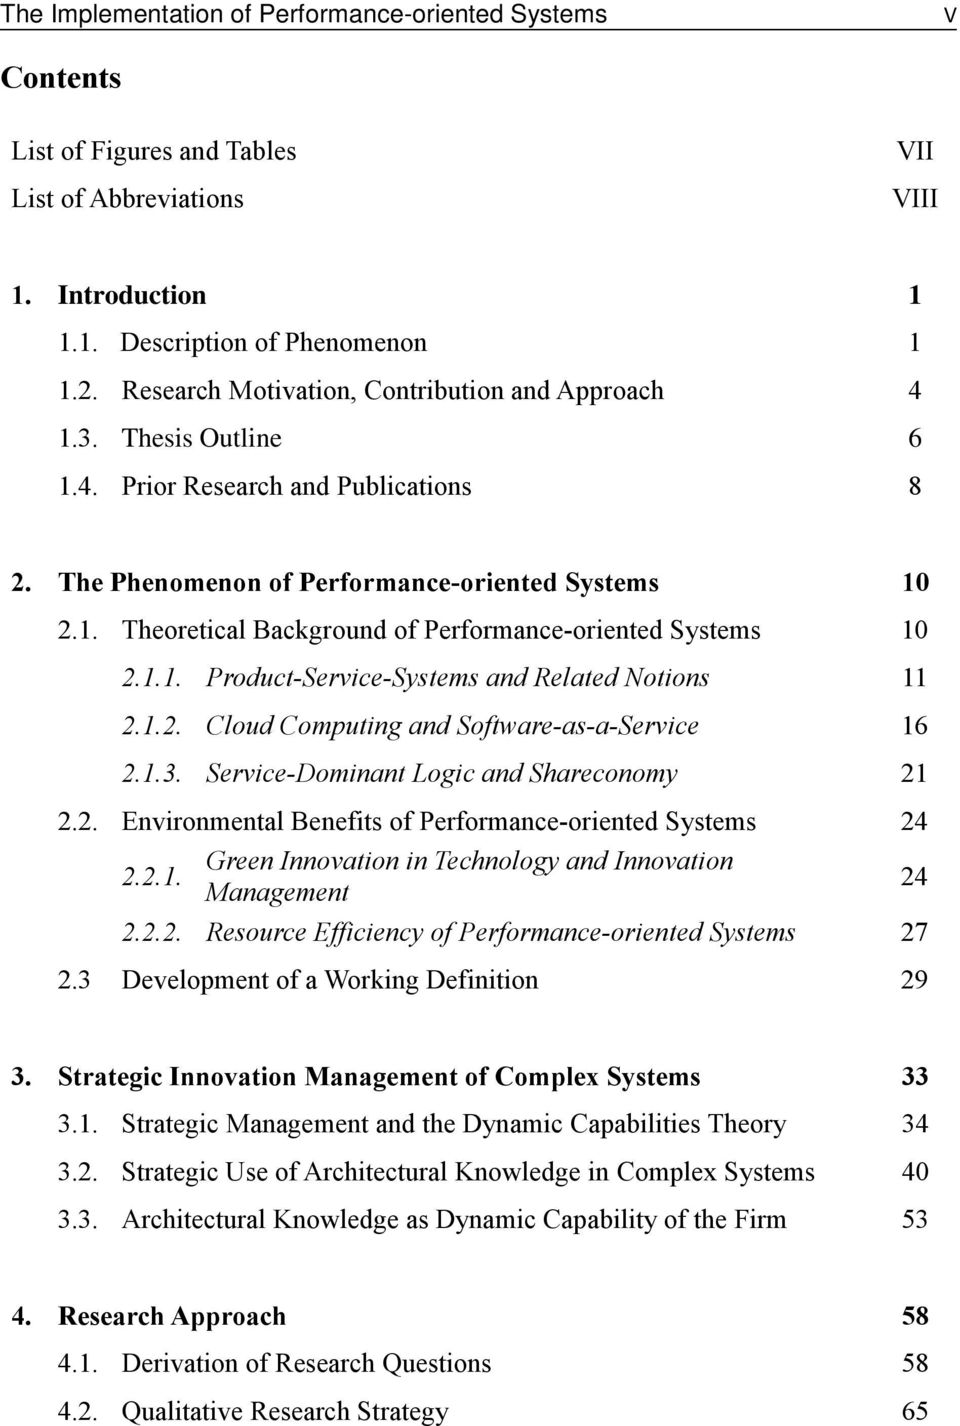 1.1. Product-Service-Systems and Related Notions 11 2.1.2. Cloud Computing and Software-as-a-Service 16 2.1.3. Service-Dominant Logic and Shareconomy 21 2.2. Environmental Benefits of Performance-oriented Systems 24 2.